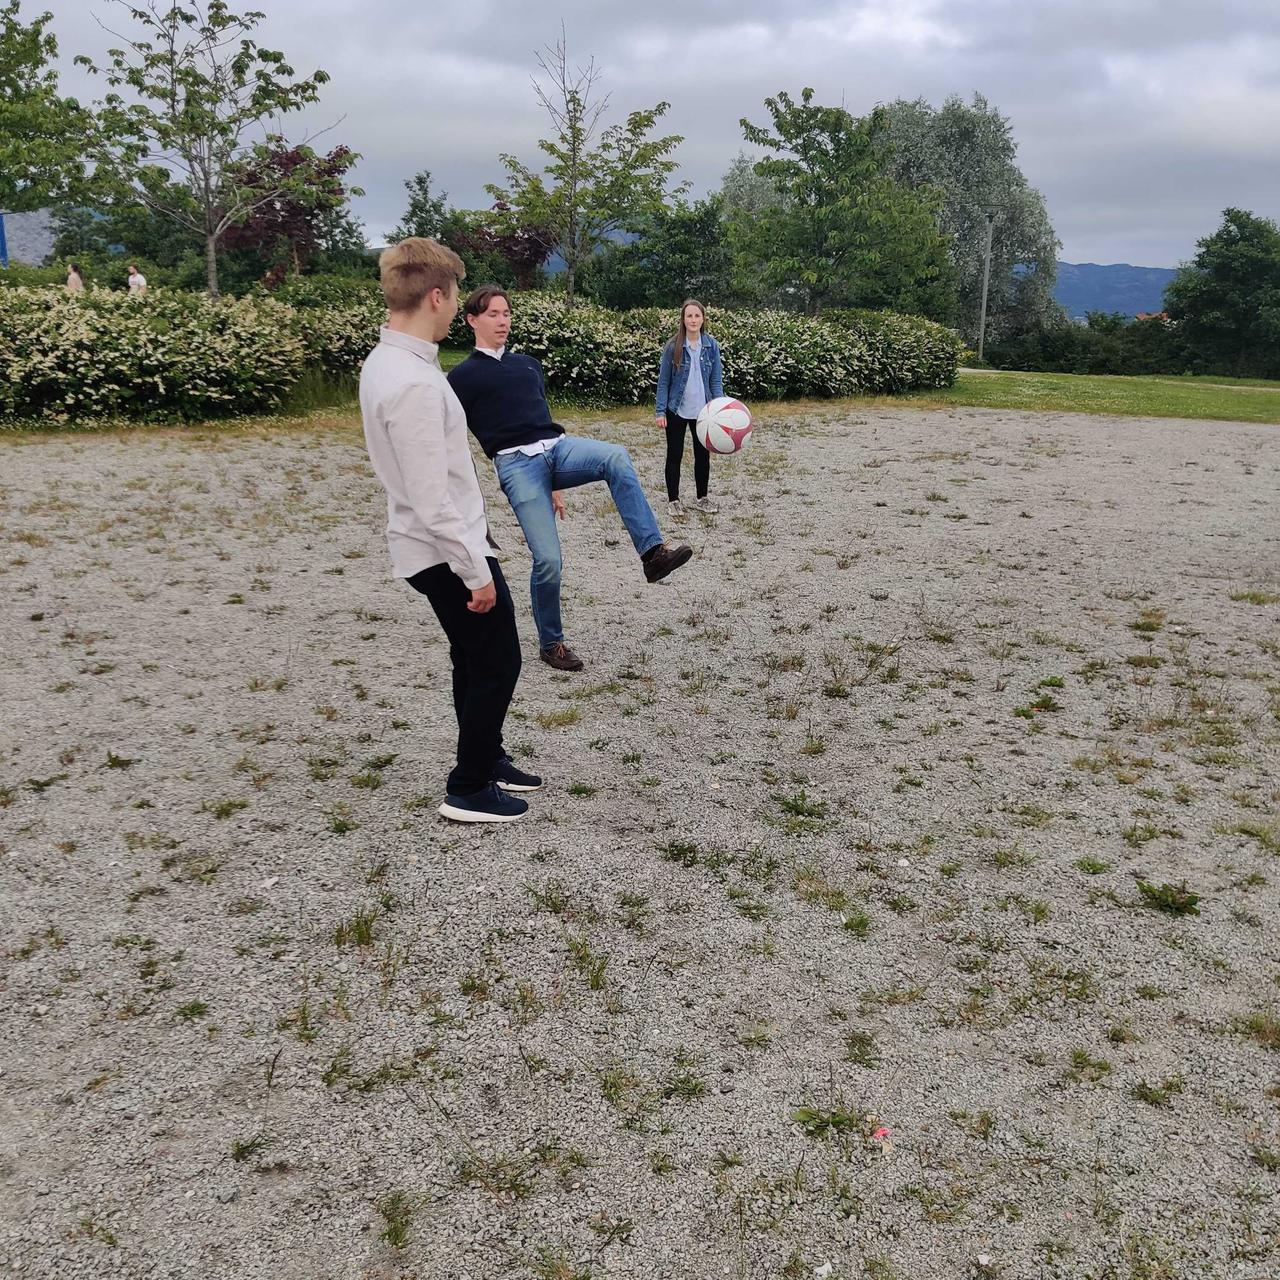 People in nature, Jeans, Sky, Plant, Cloud, Tree, Gesture, Grass